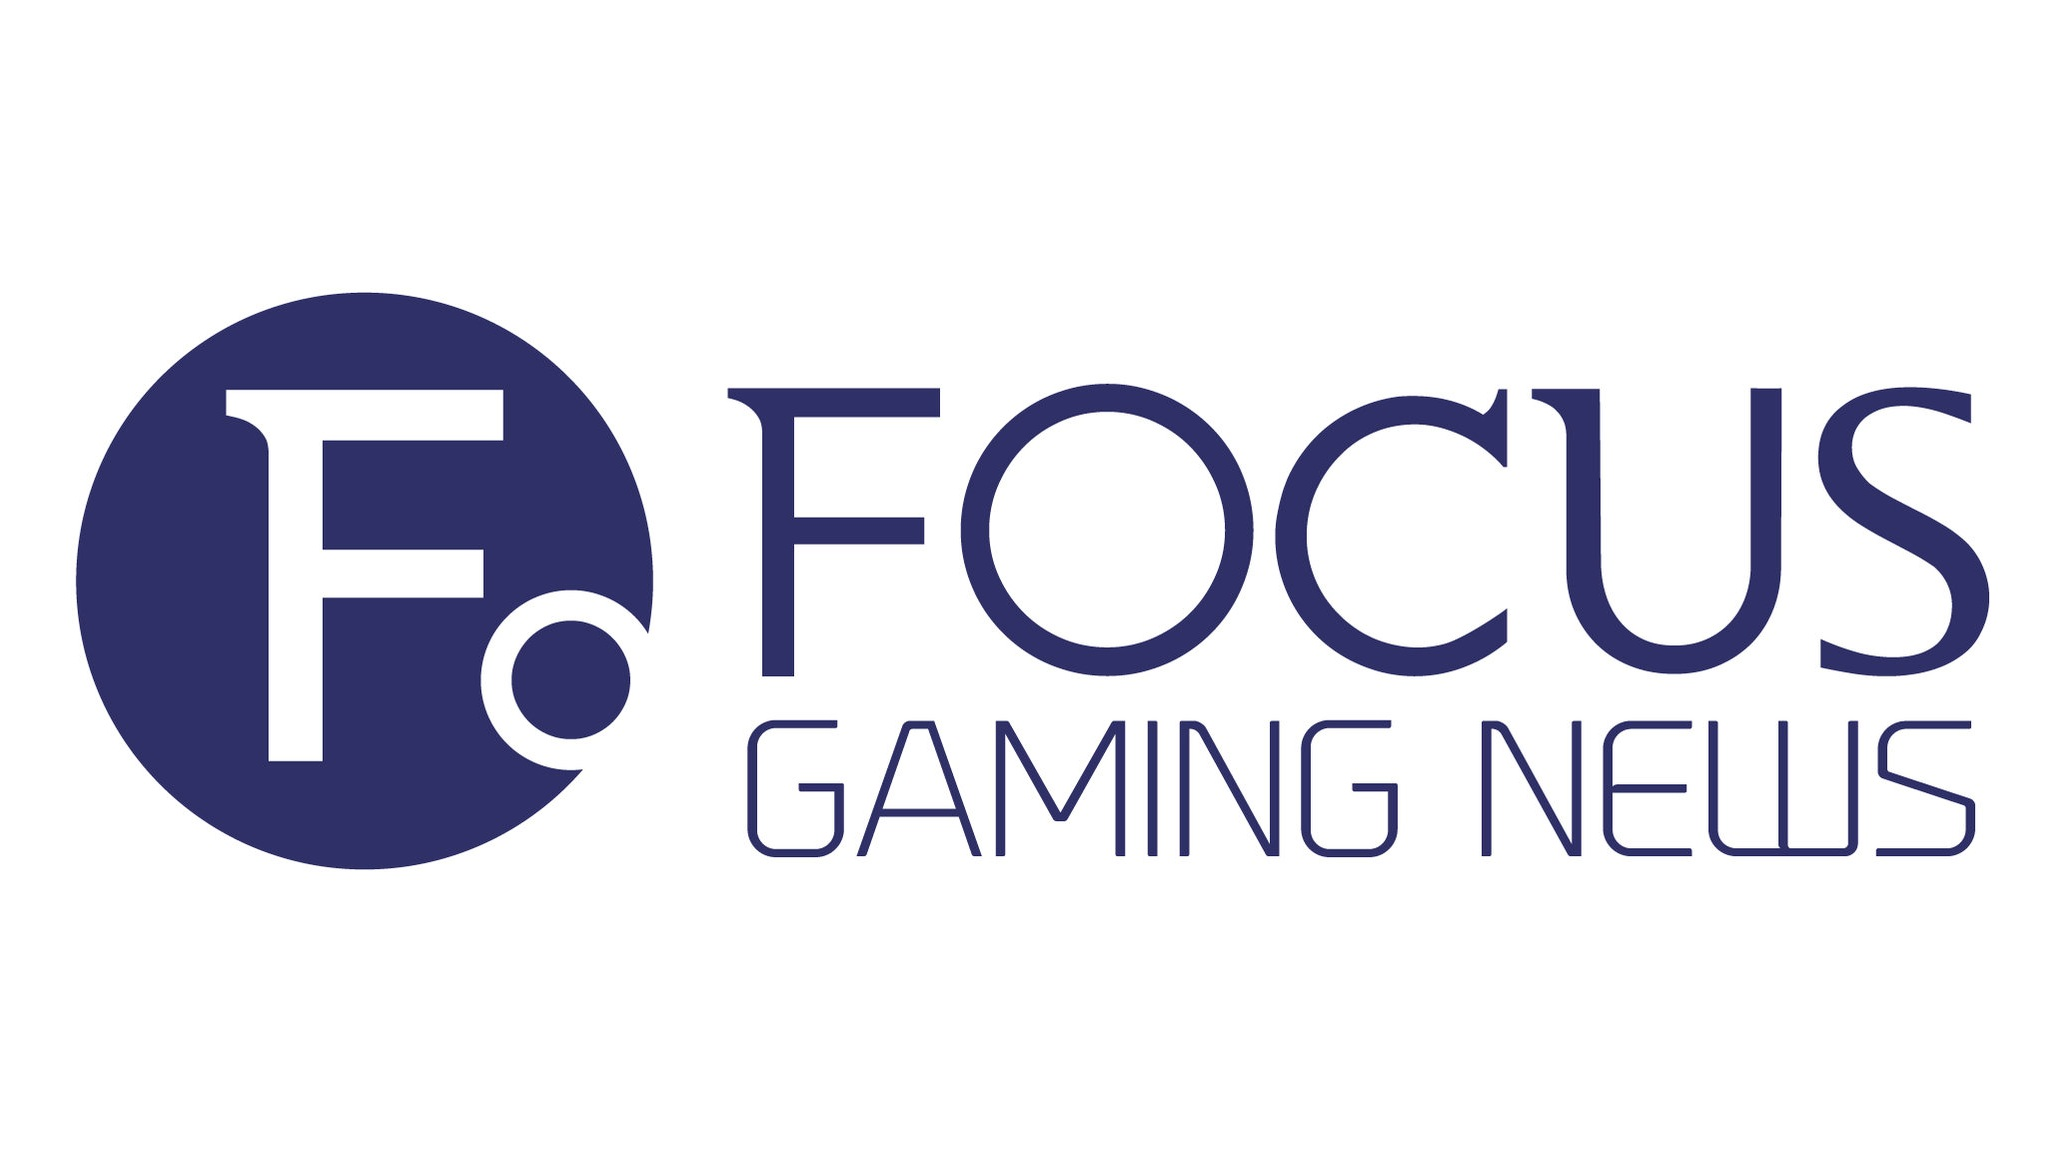 - Focus Gaming News is a daily digital newsletter dedicated to international gaming executives. This insightful communications tool is received by more than 15,000 subscribers around the world and delivers up-to-date news from the gaming and iGaming business. The newsletter features news on regulation, legislation, casino, sports betting and online gaming, as well as reports on the latest products and trends, interviews with key specialists, and much. There is also Focus Latin America - a daily release focusing exclusively on this specific market.